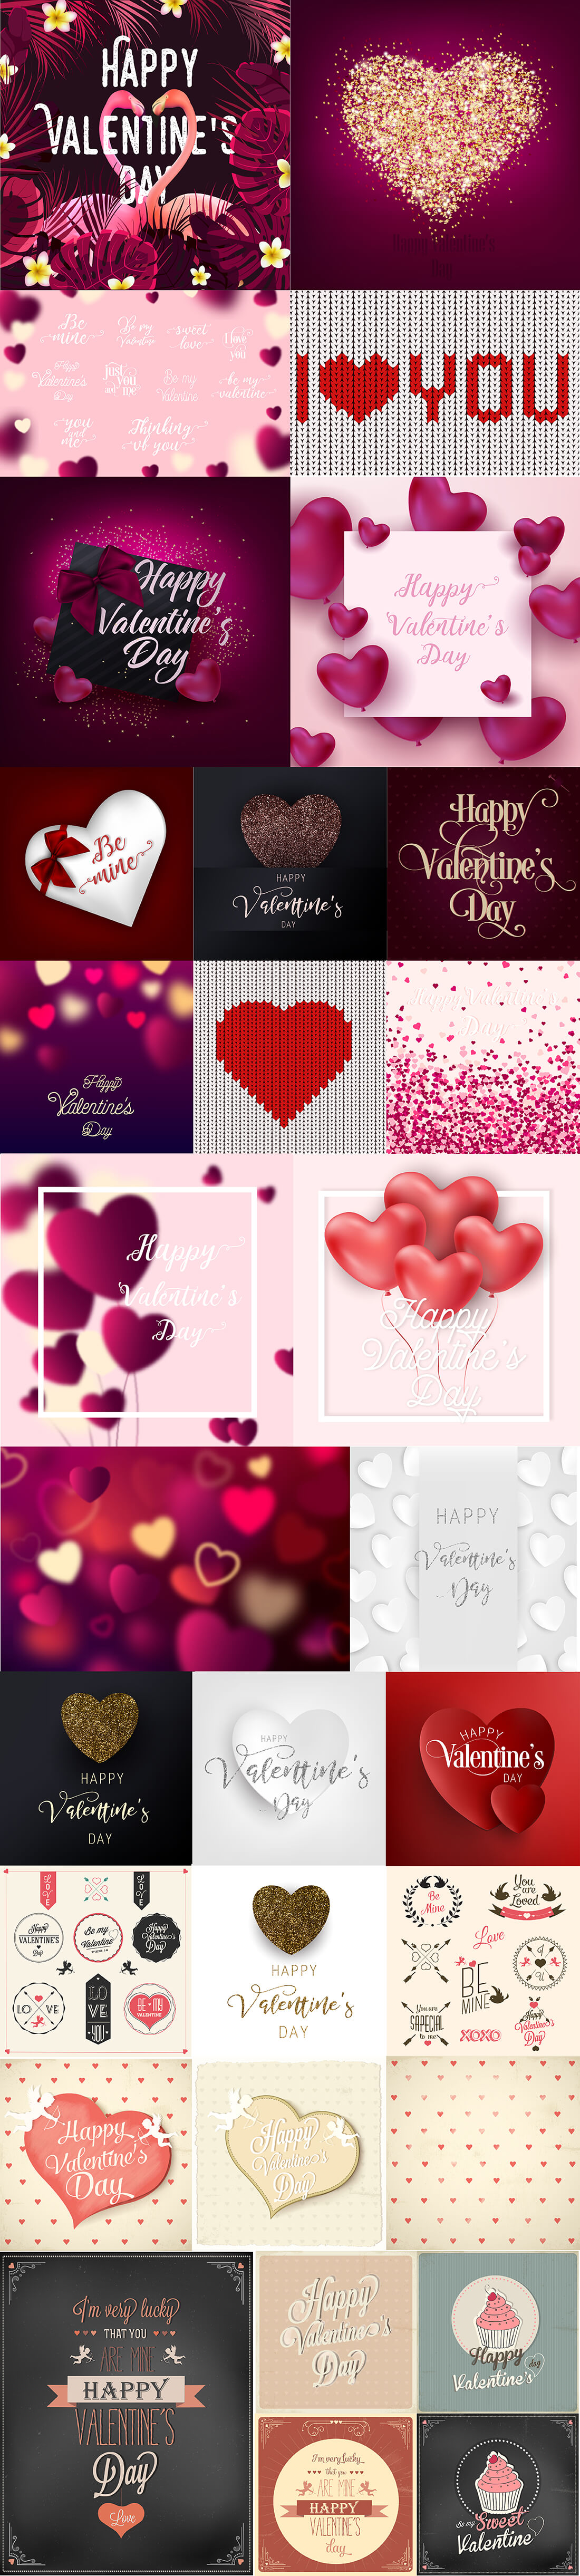 Feel the Love: Valentine's Day Bundle of 100+ Vectors - only $9